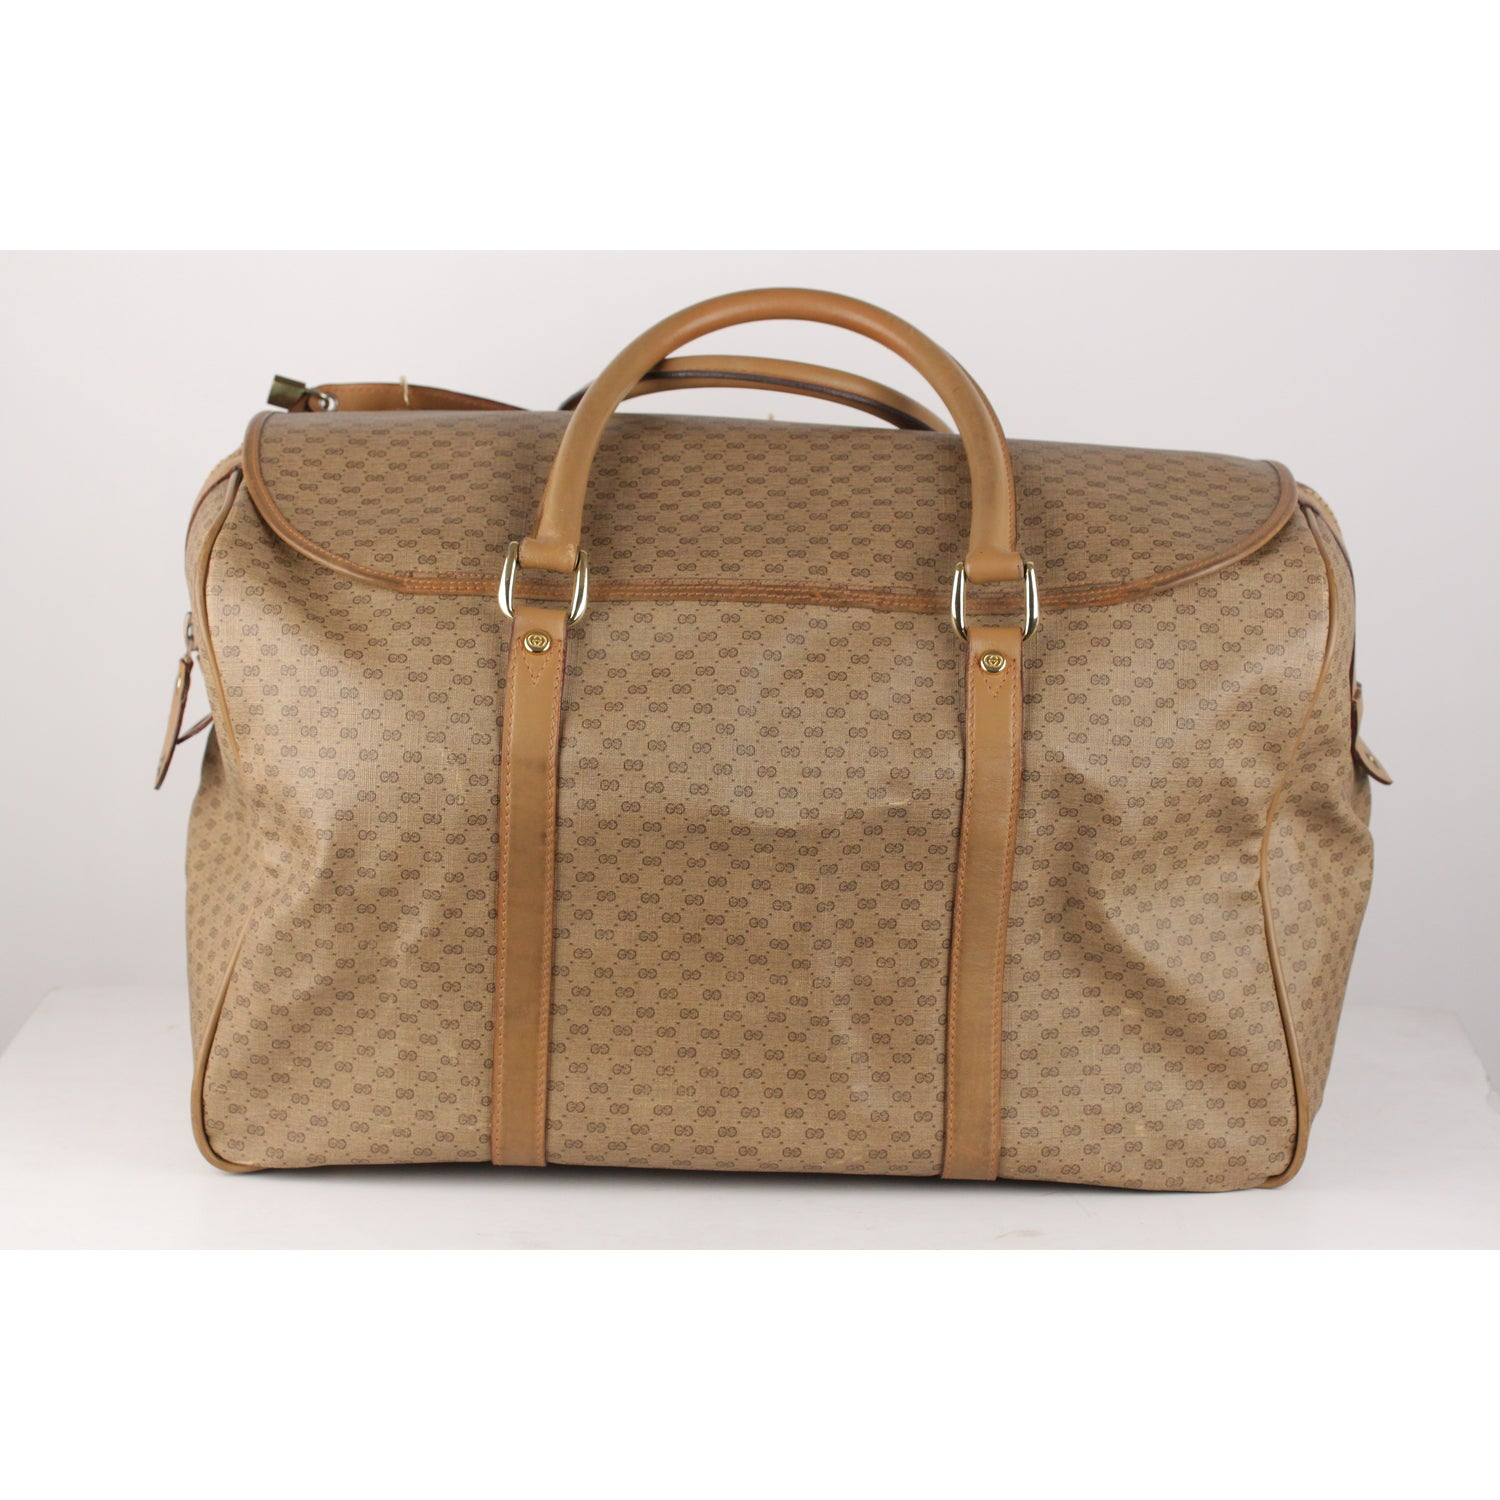 13fcdcce657 Gucci Vintage Tan GG Monogram Canvas Travel Bag Weekender For Sale at  1stdibs